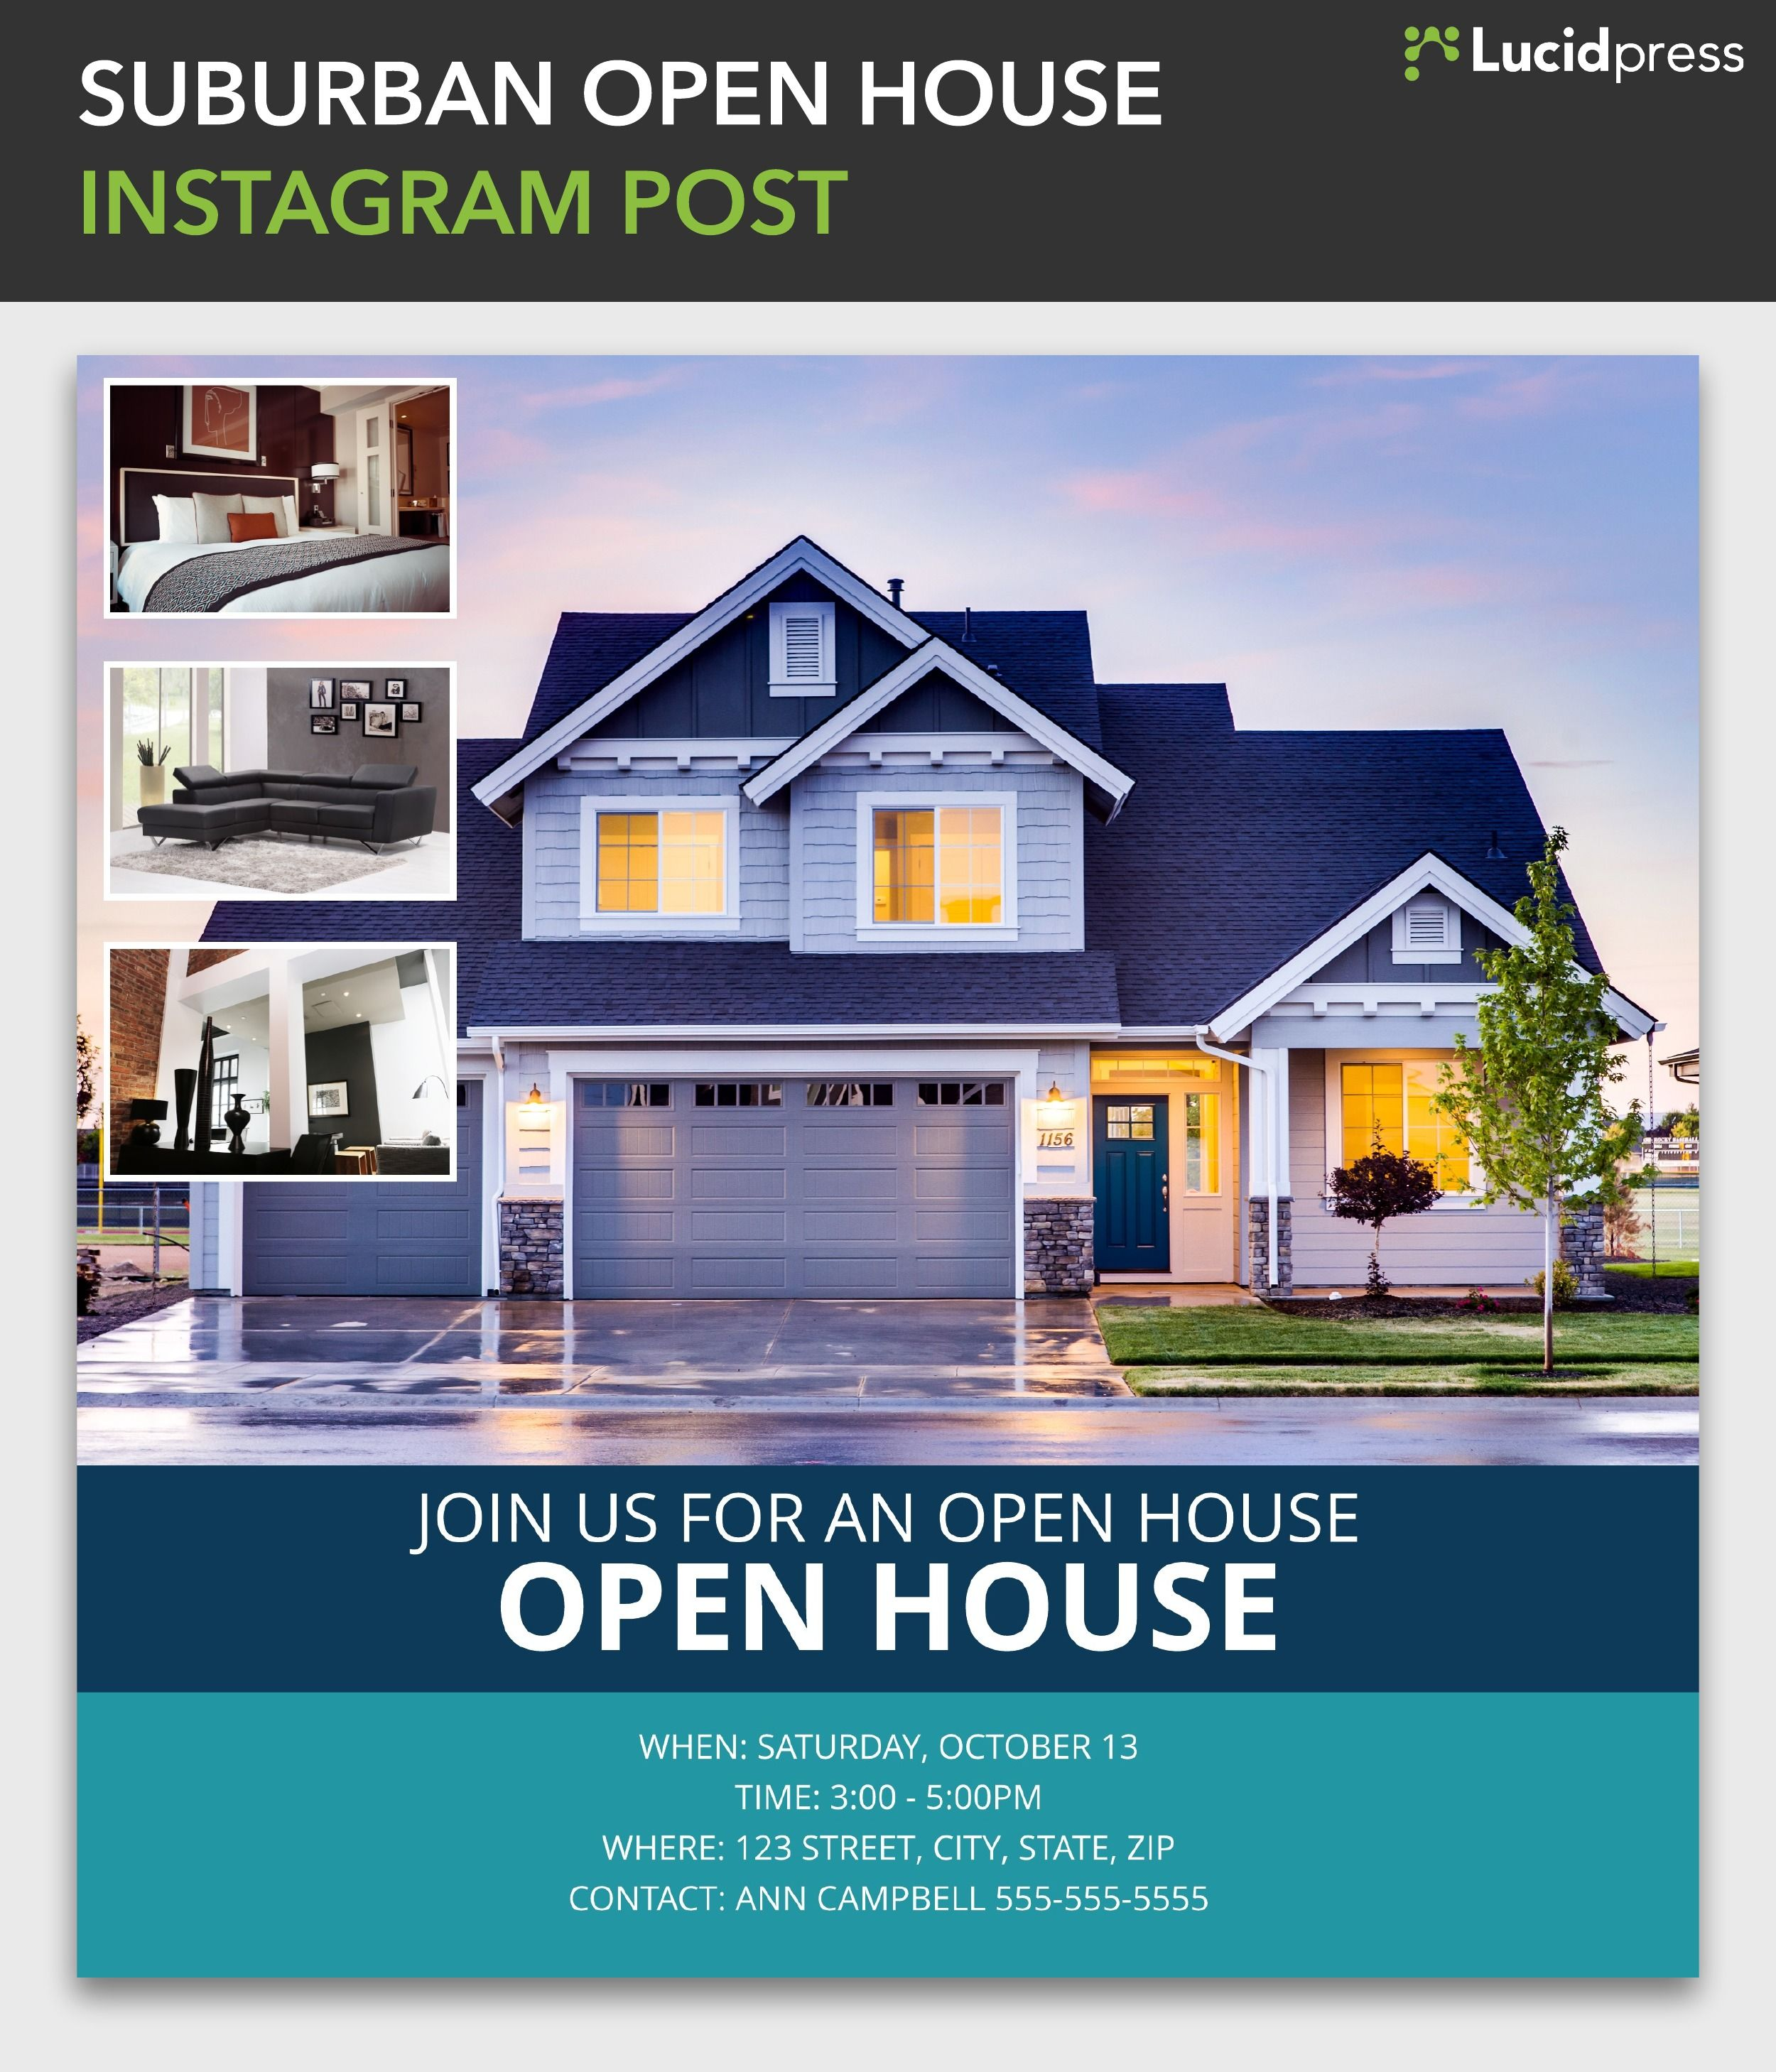 Suburban Open House Instagram Post Template Open House Real Estate Real Estate Houses Renting A House